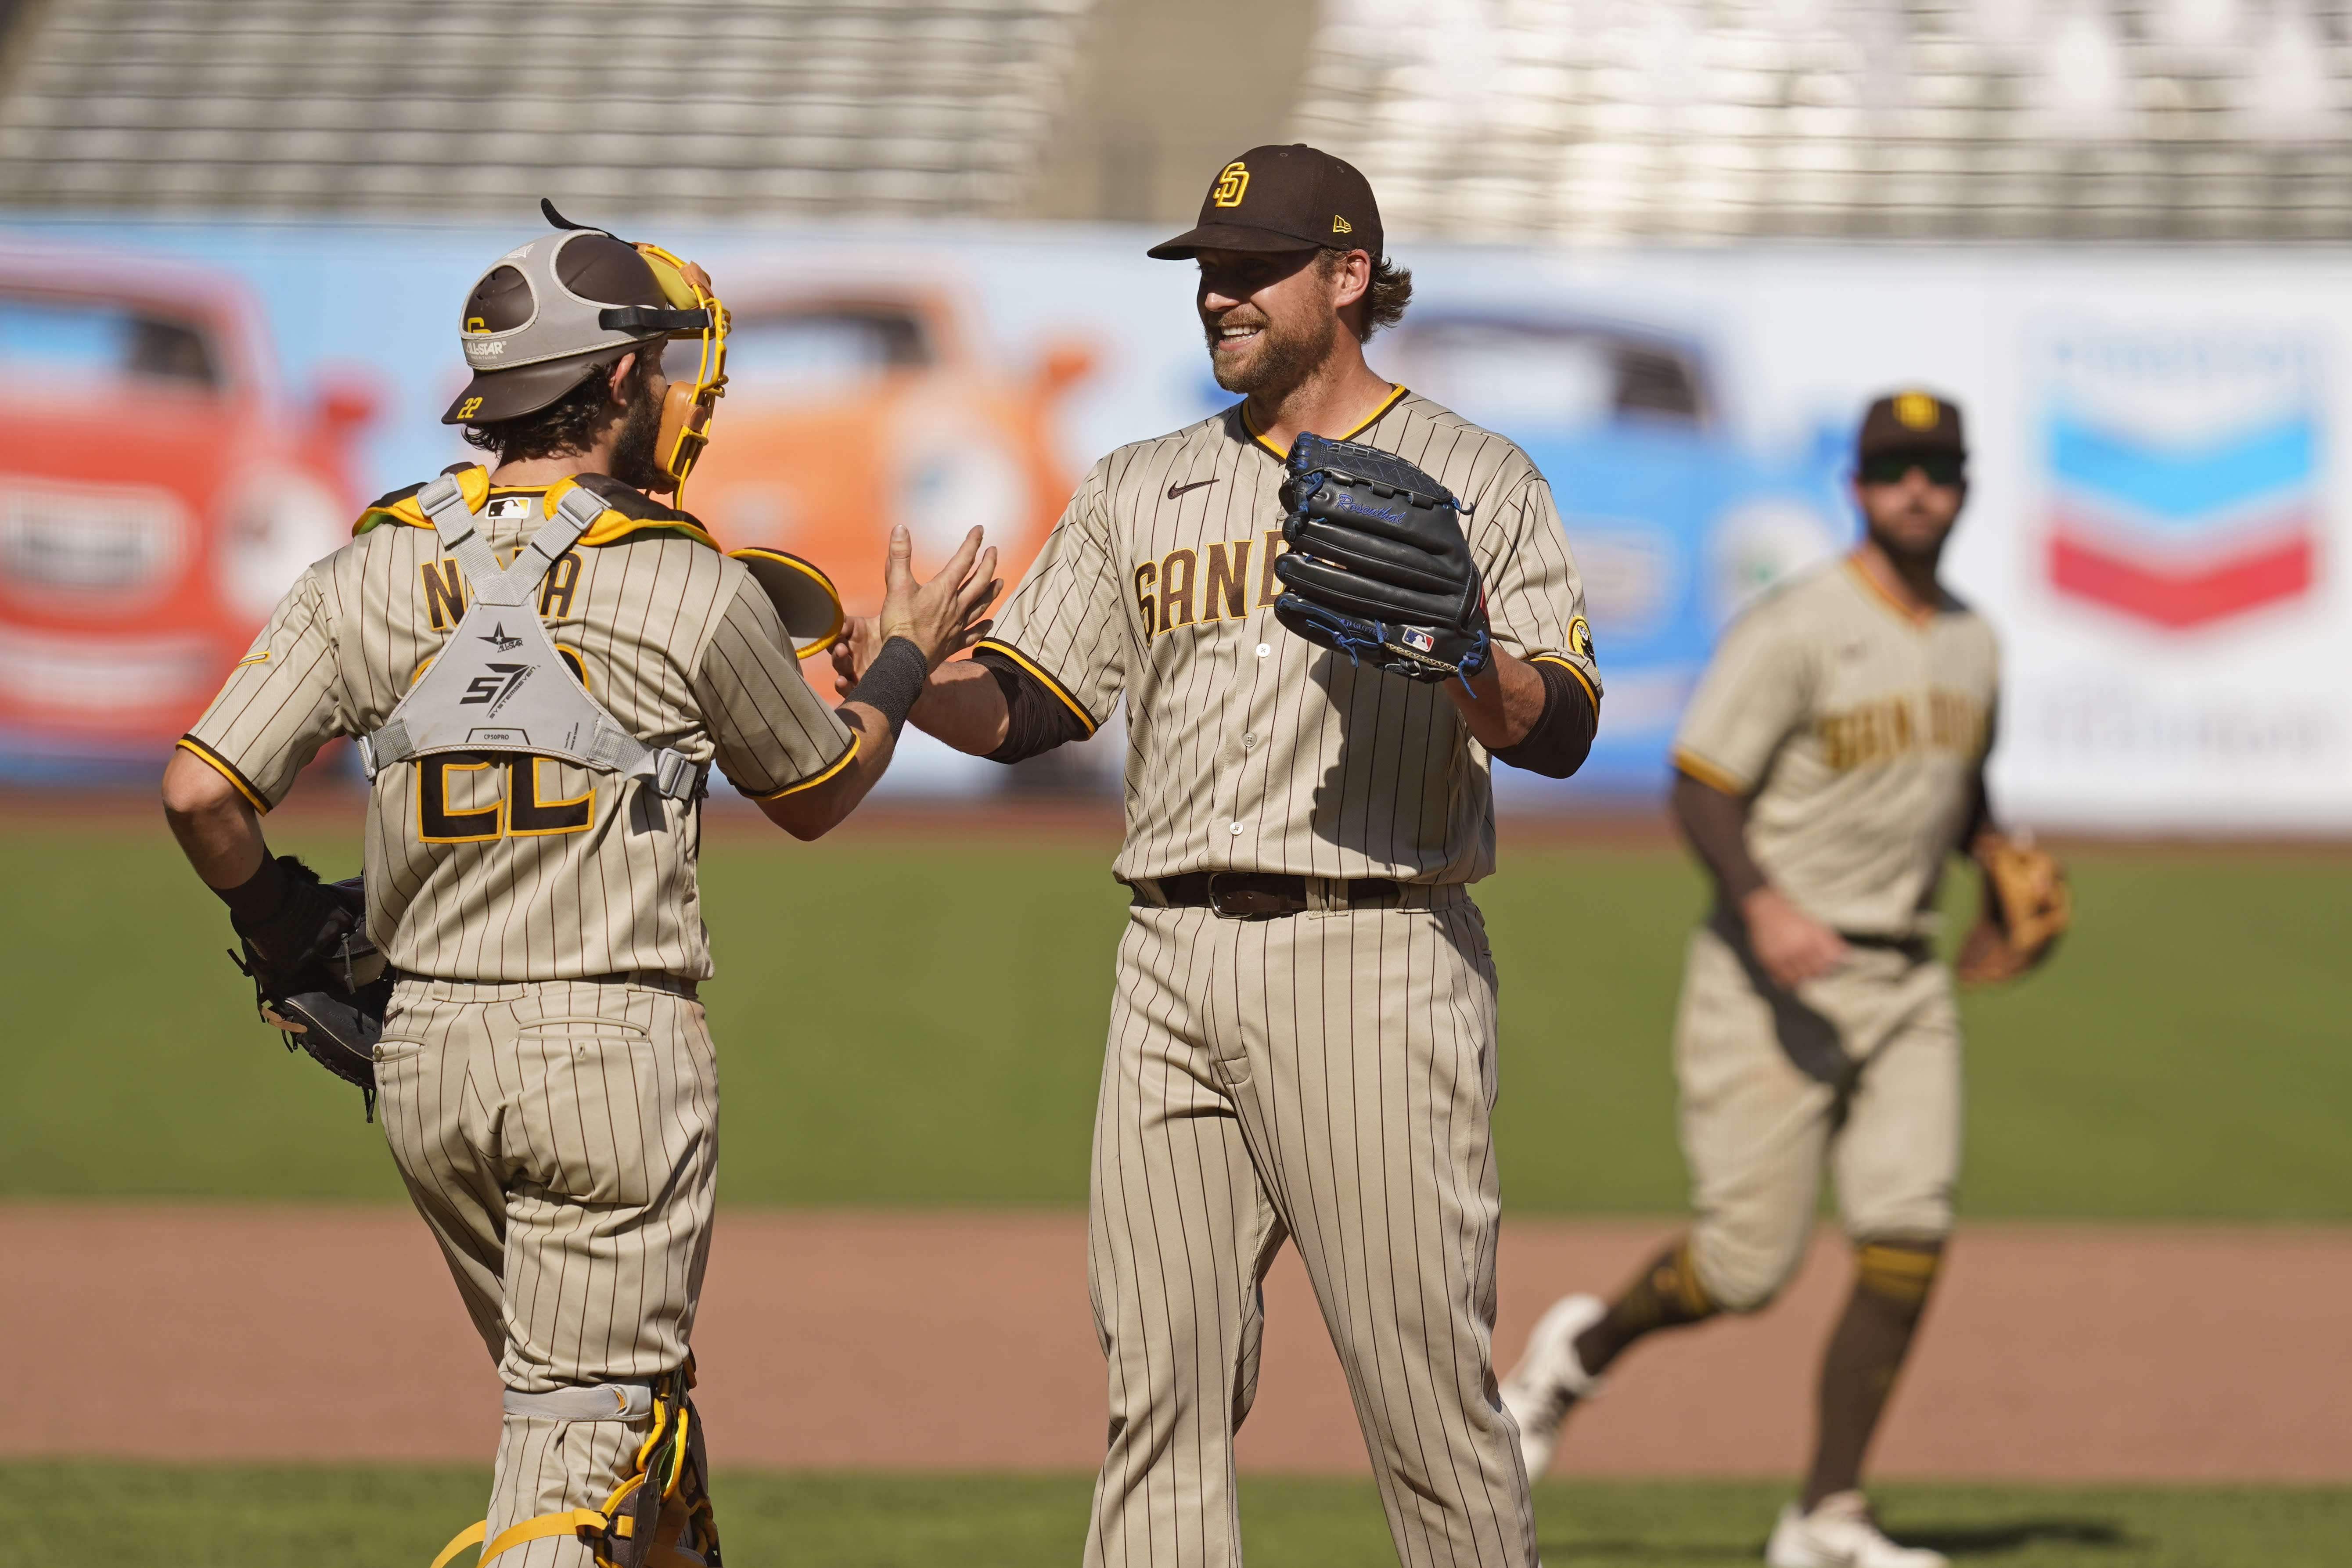 San Diego Padres relief pitcher Trevor Rosenthal, front right, is greeted by catcher Austin Nola at the end of a baseball game against the San Francisco Giants, Sunday, Sept. 27, 2020, in San Francisco. (AP Photo/Eric Risberg)